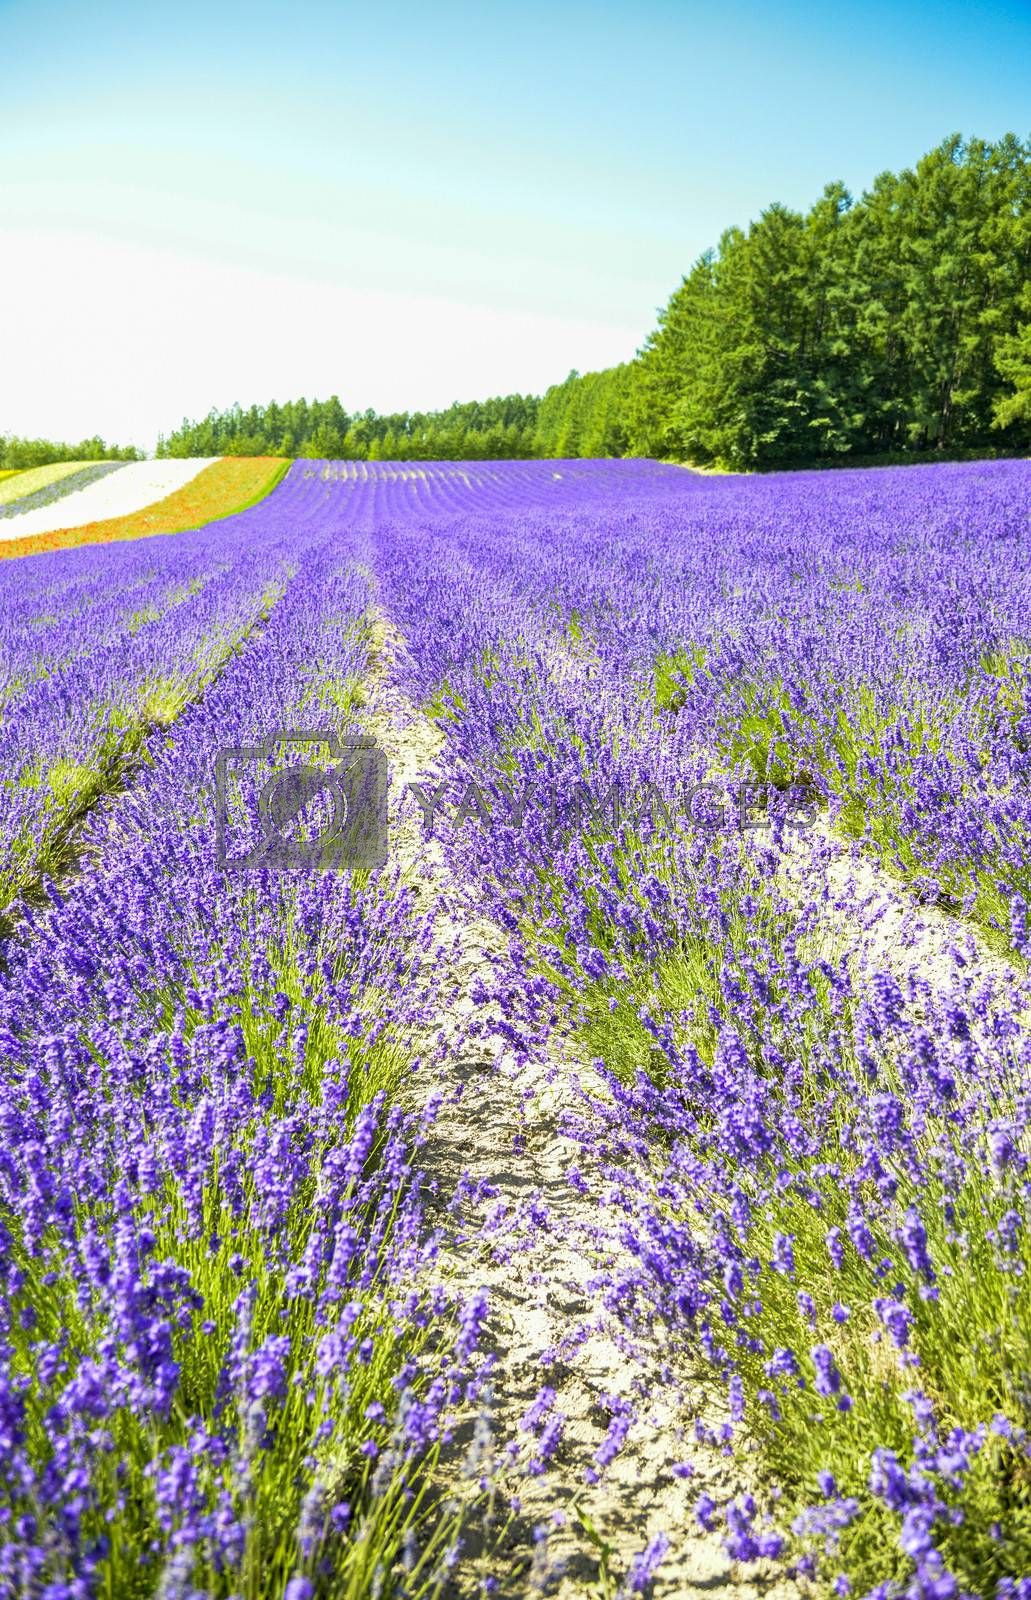 Lavender field in the row1